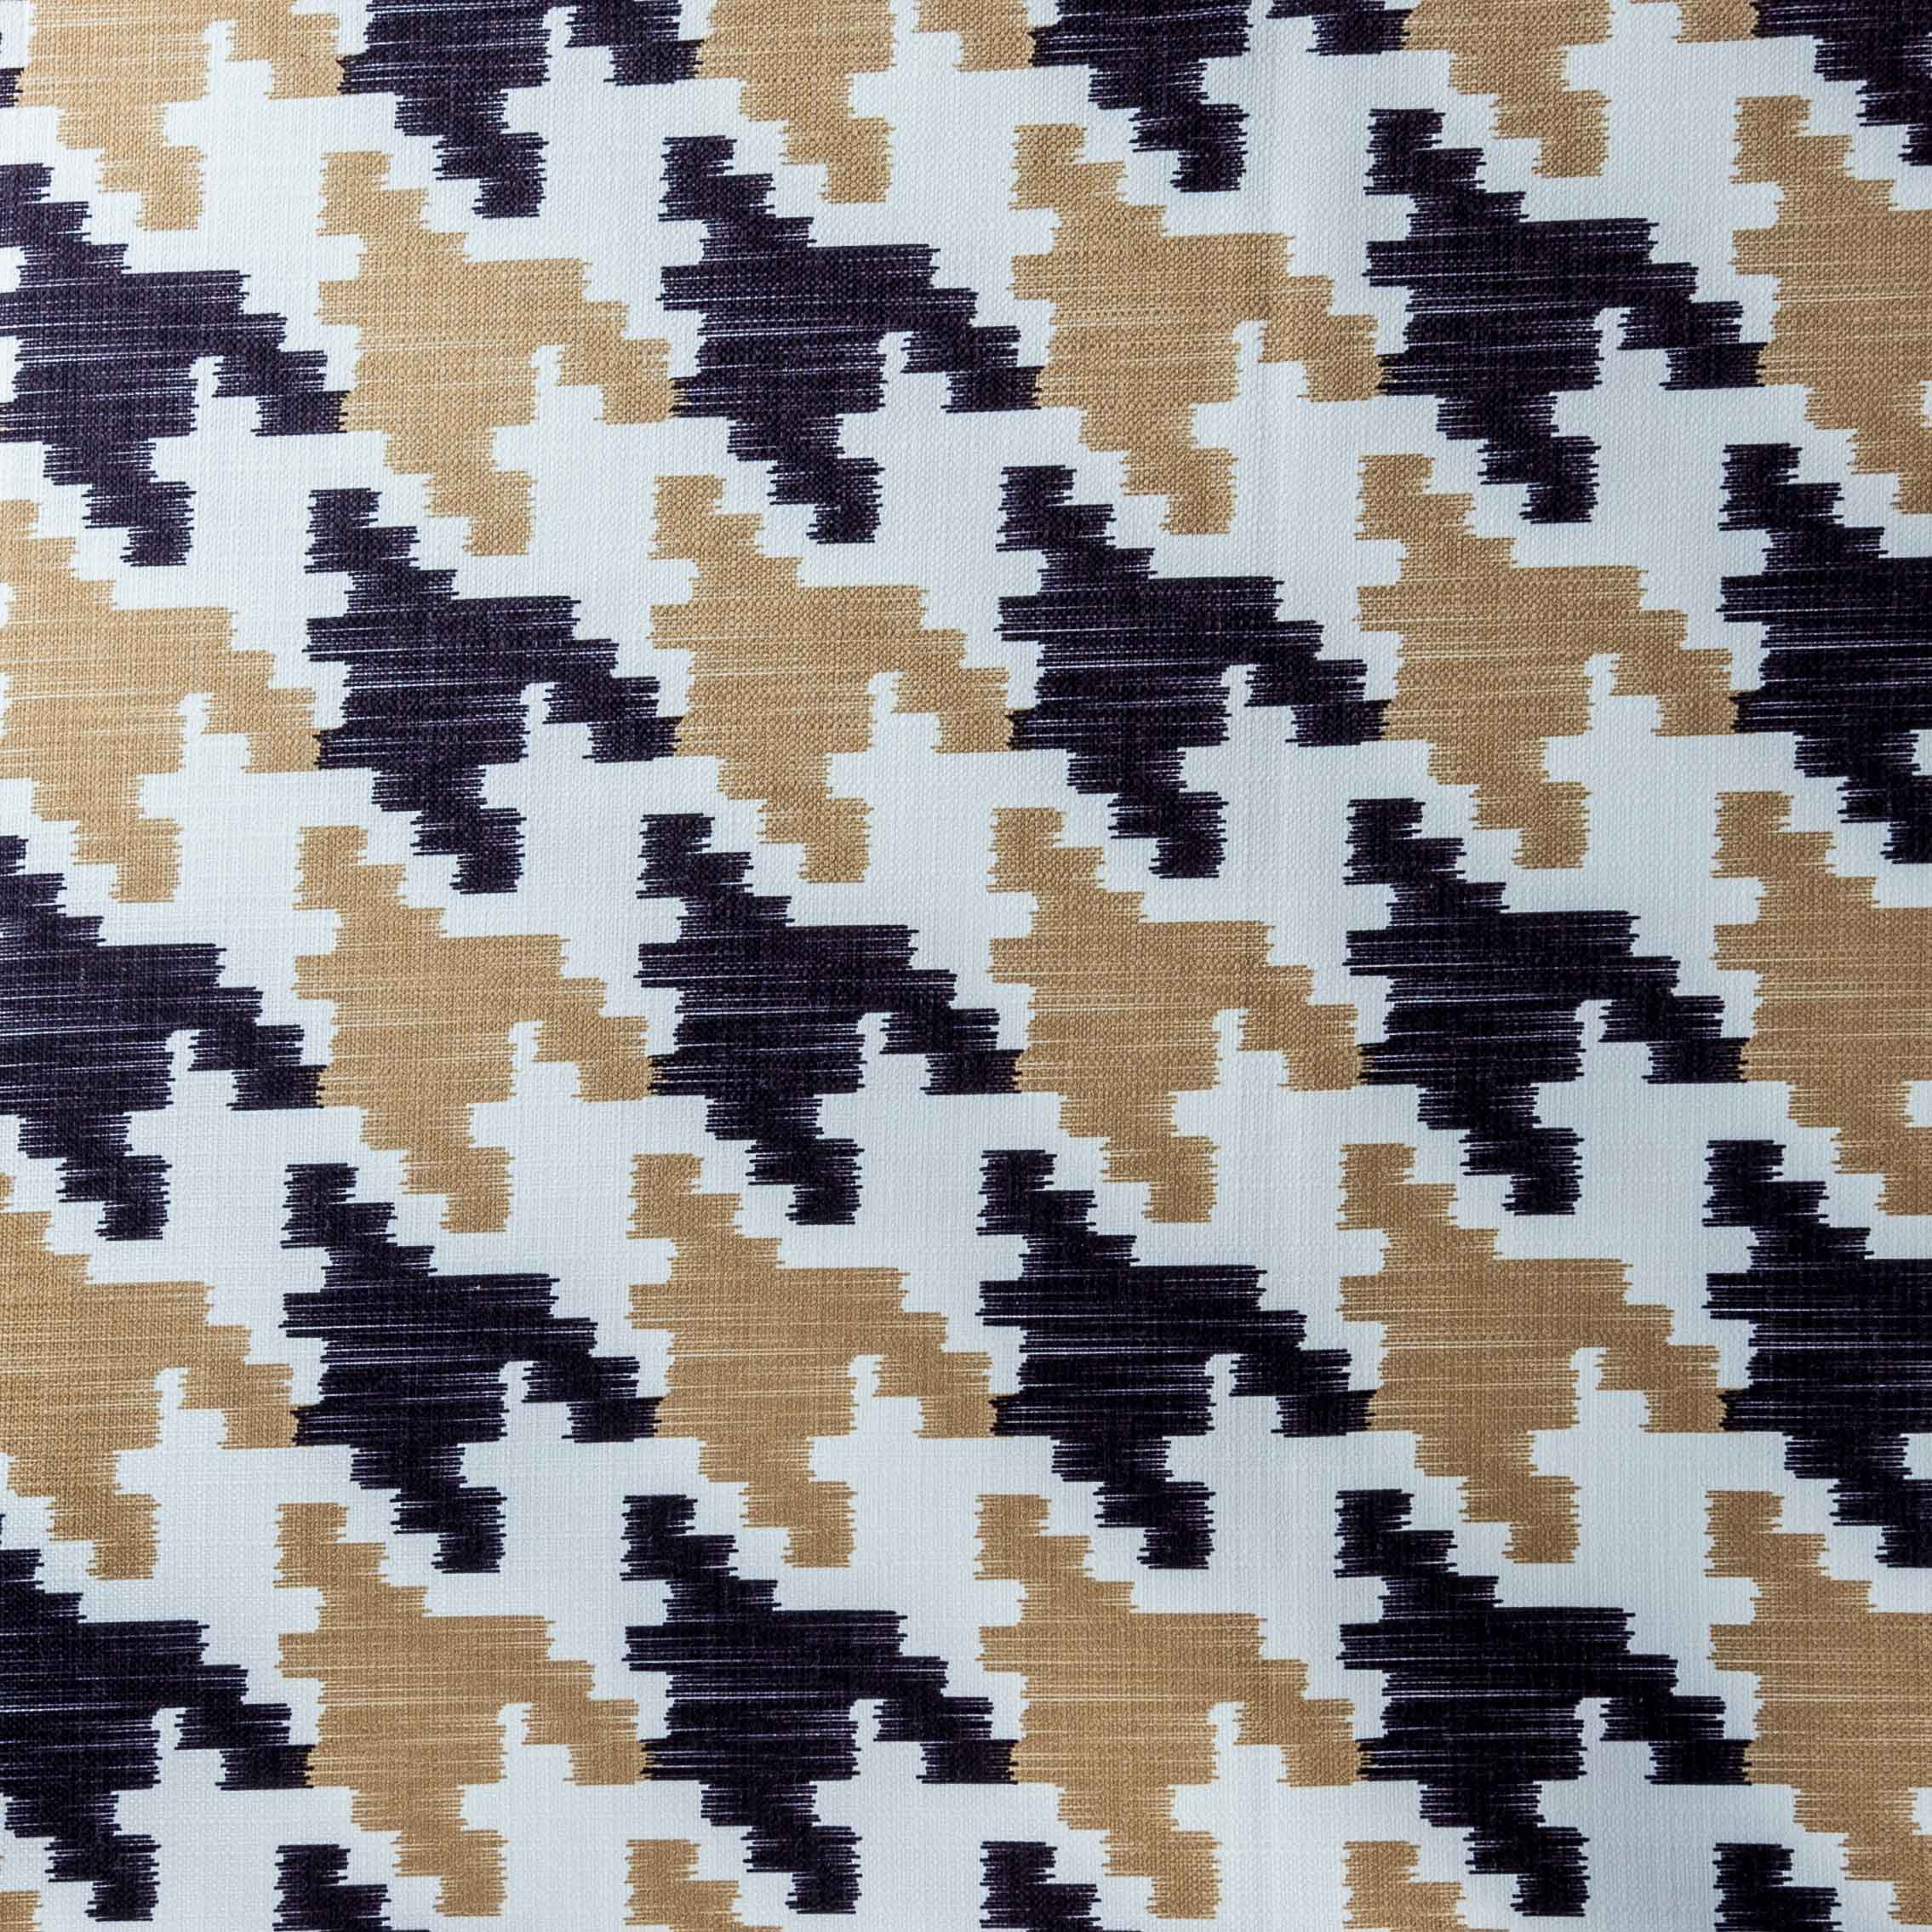 Black and Gold Houndstooth Tabelcloth